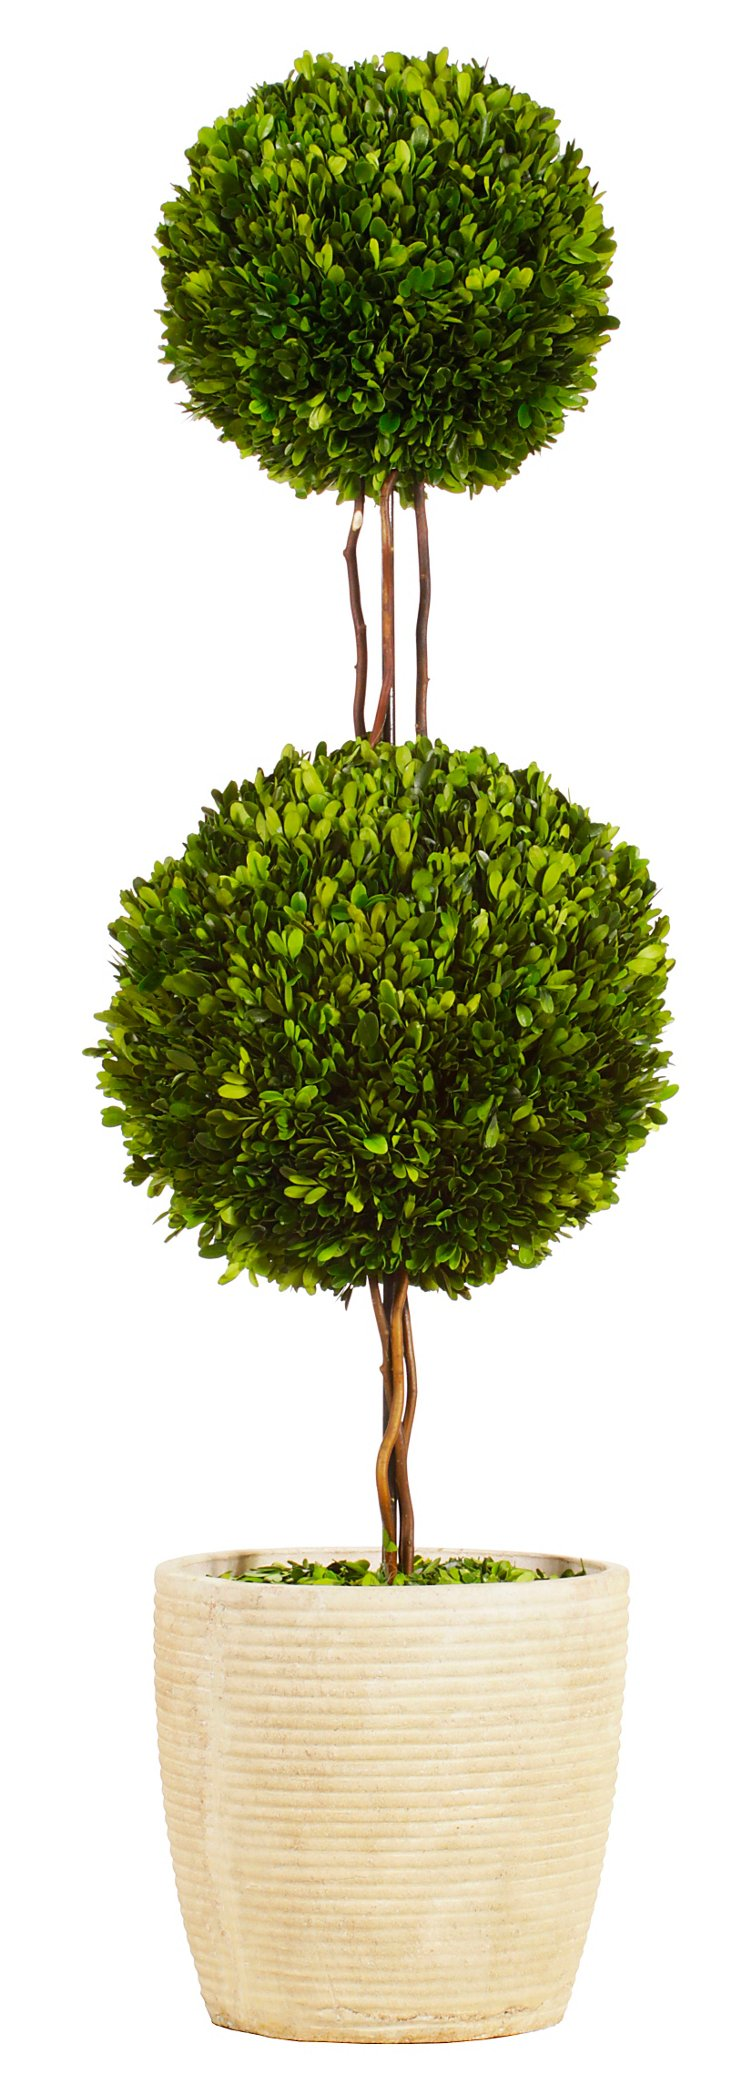 4' Double Topiary in Planter, Preserved